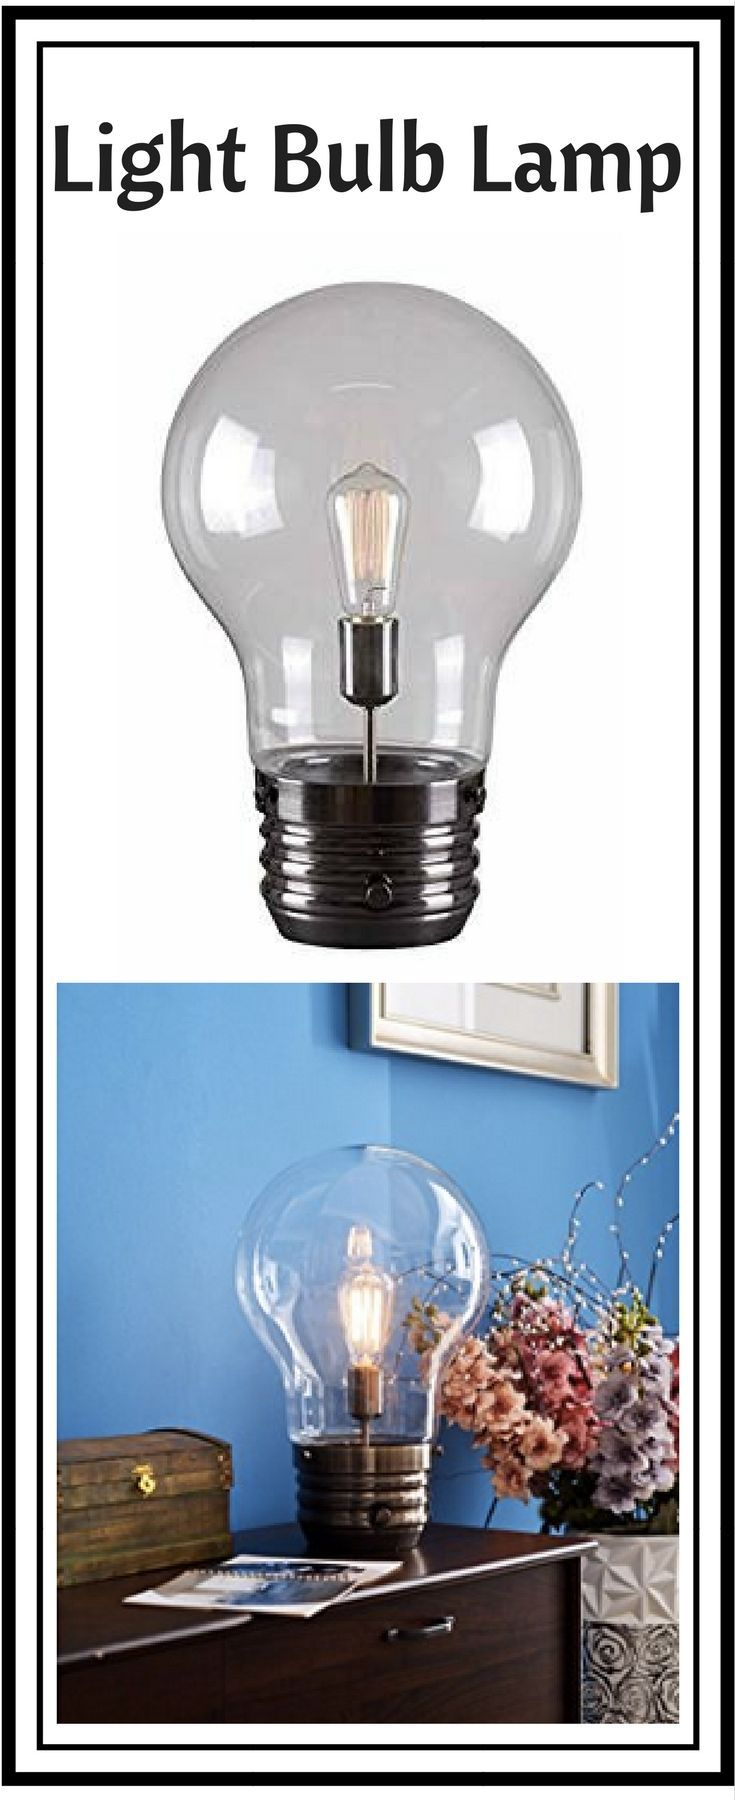 This huge light bulb lamp from Kenroy is so whimsical and ...